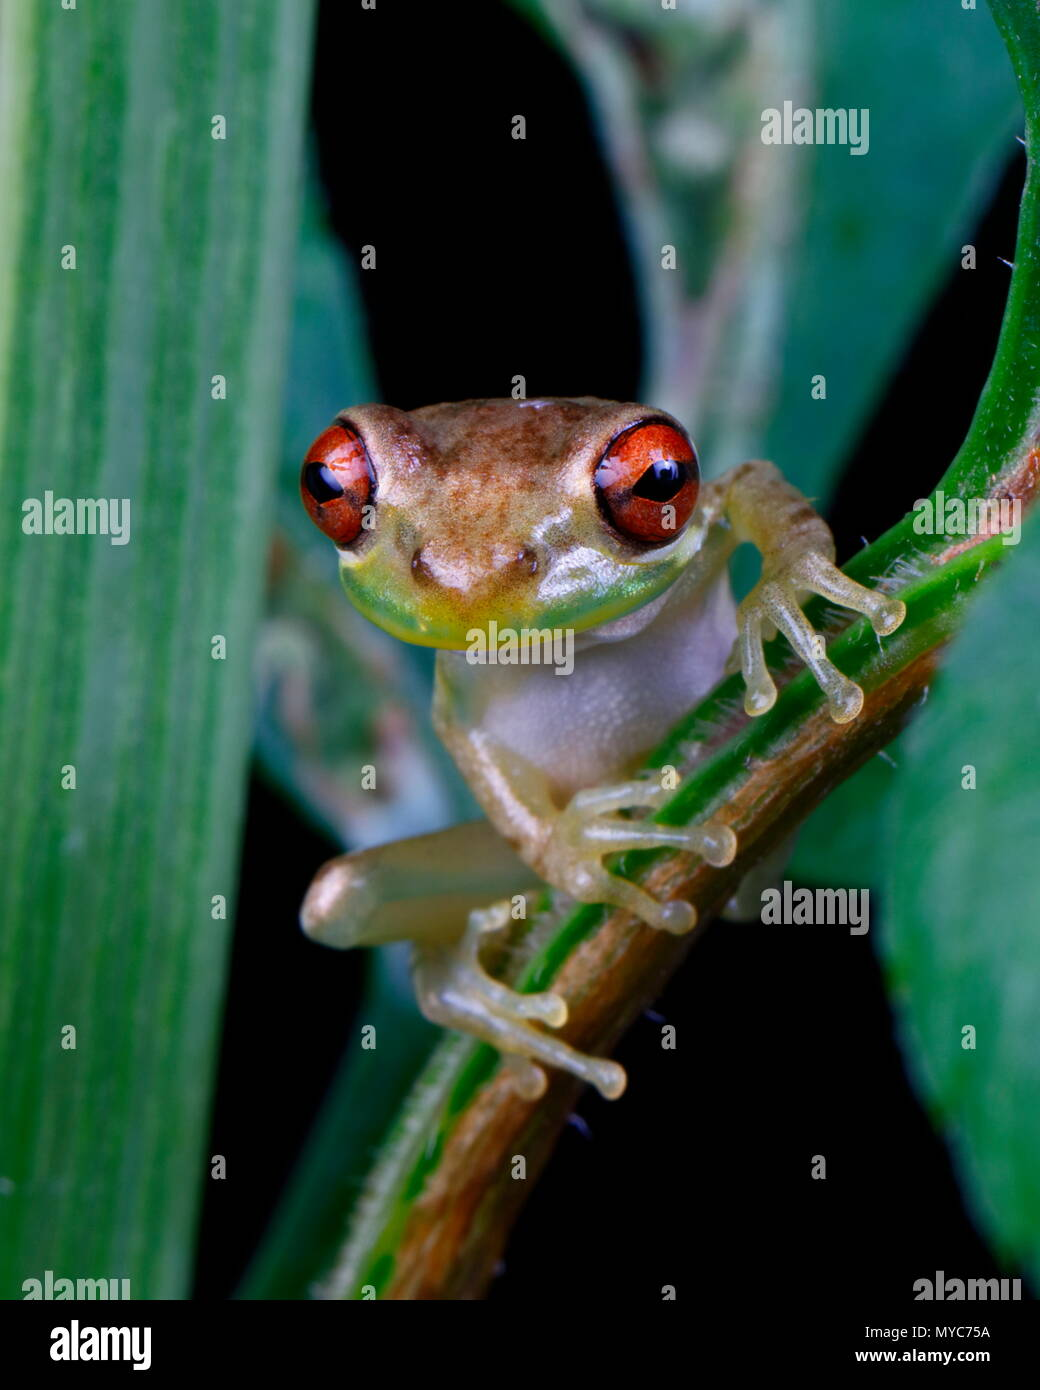 A Cuban tree frog, Osteopilus septentrionalis, foraging for food and perched in foliage. - Stock Image